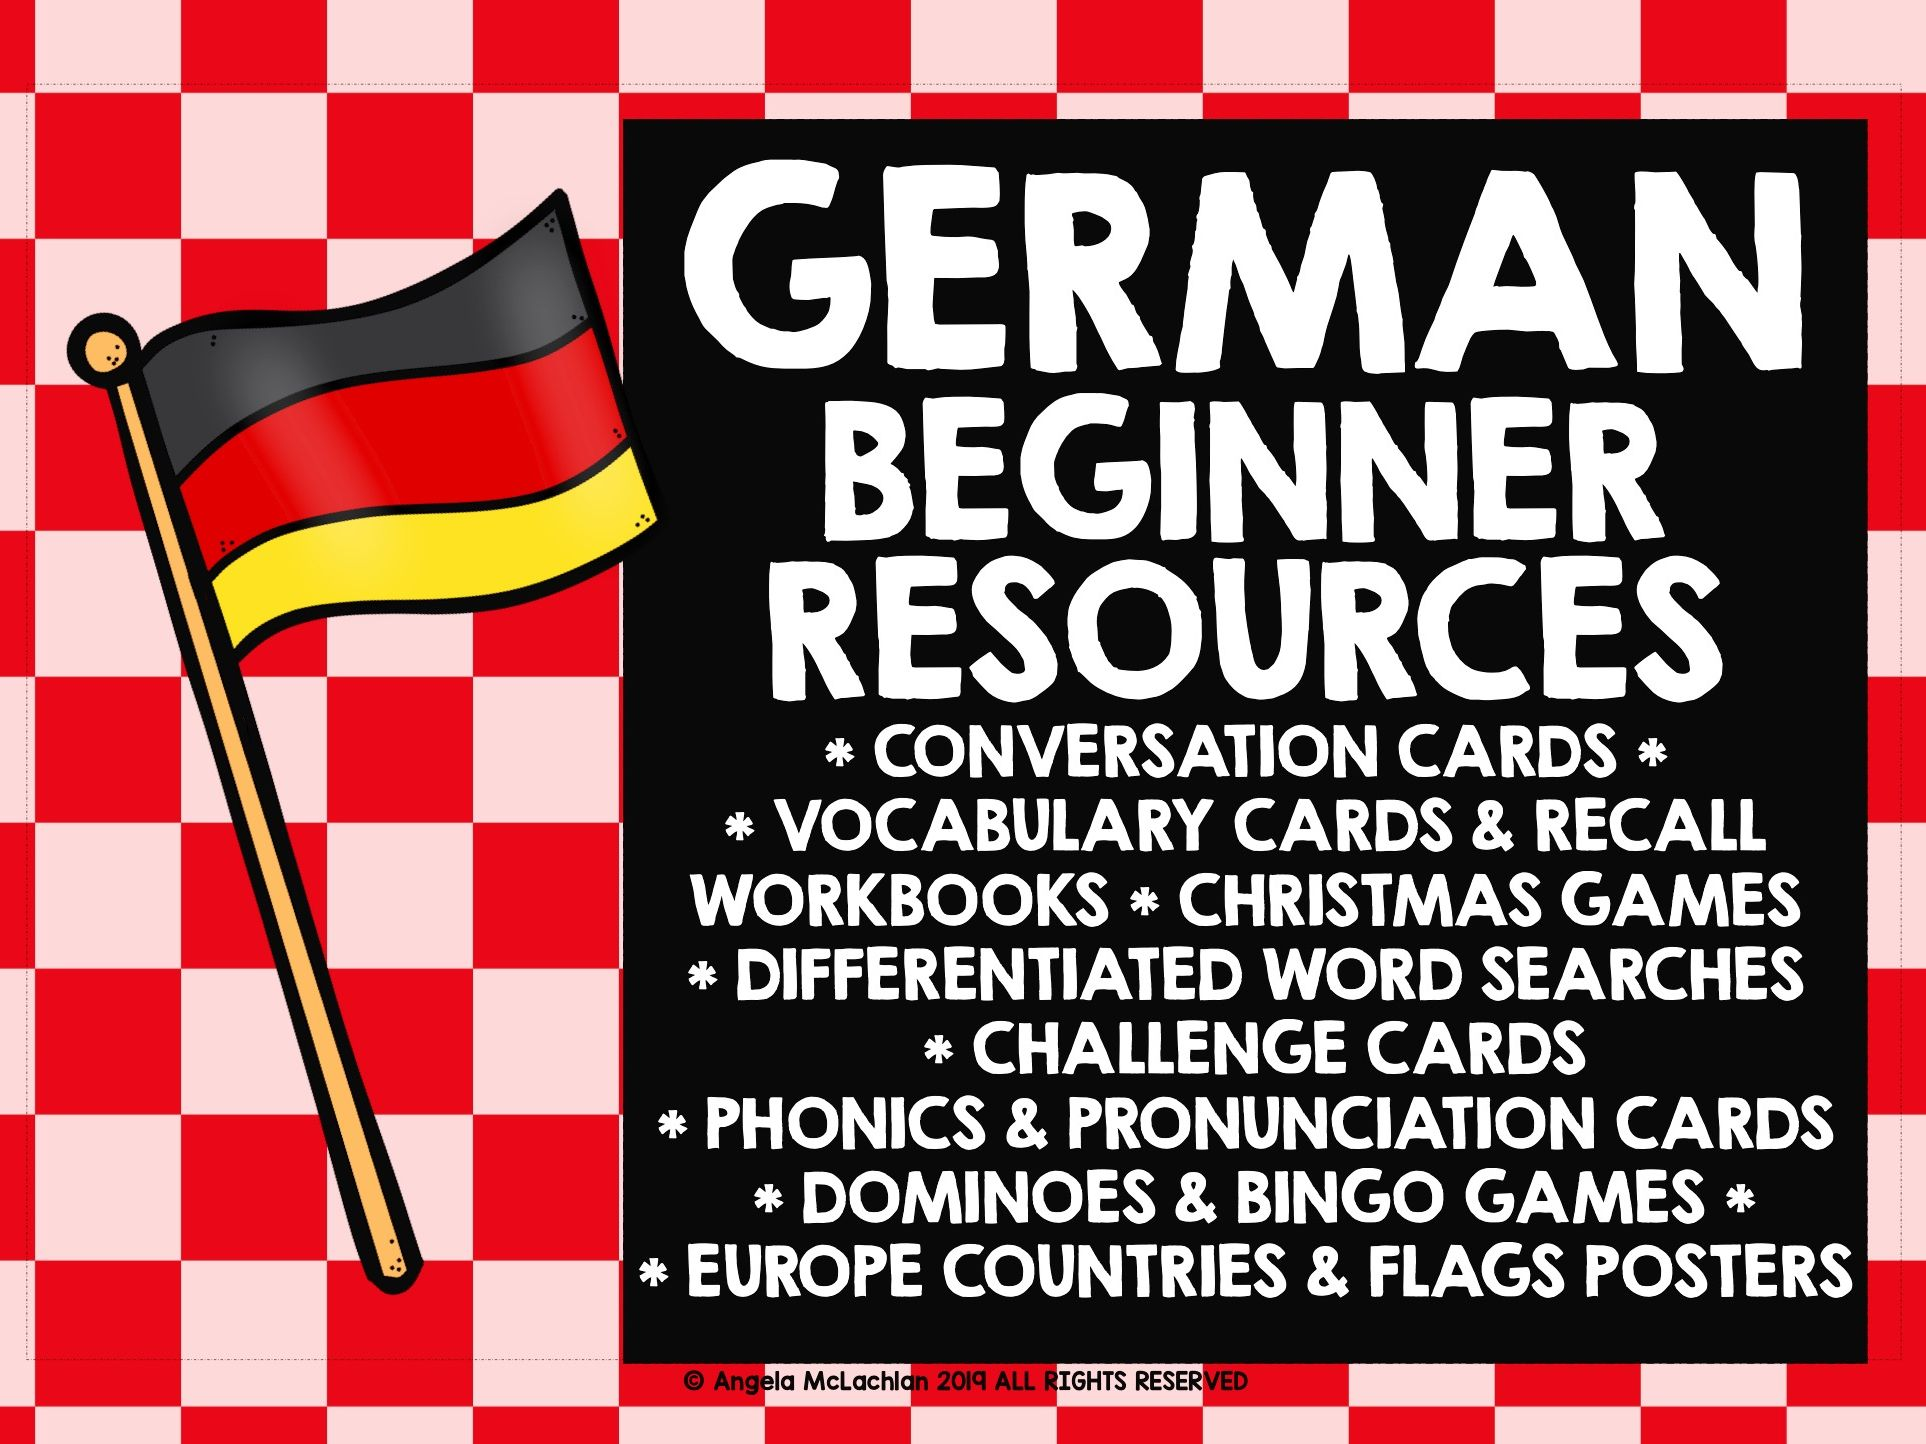 GERMAN RESOURCES #1